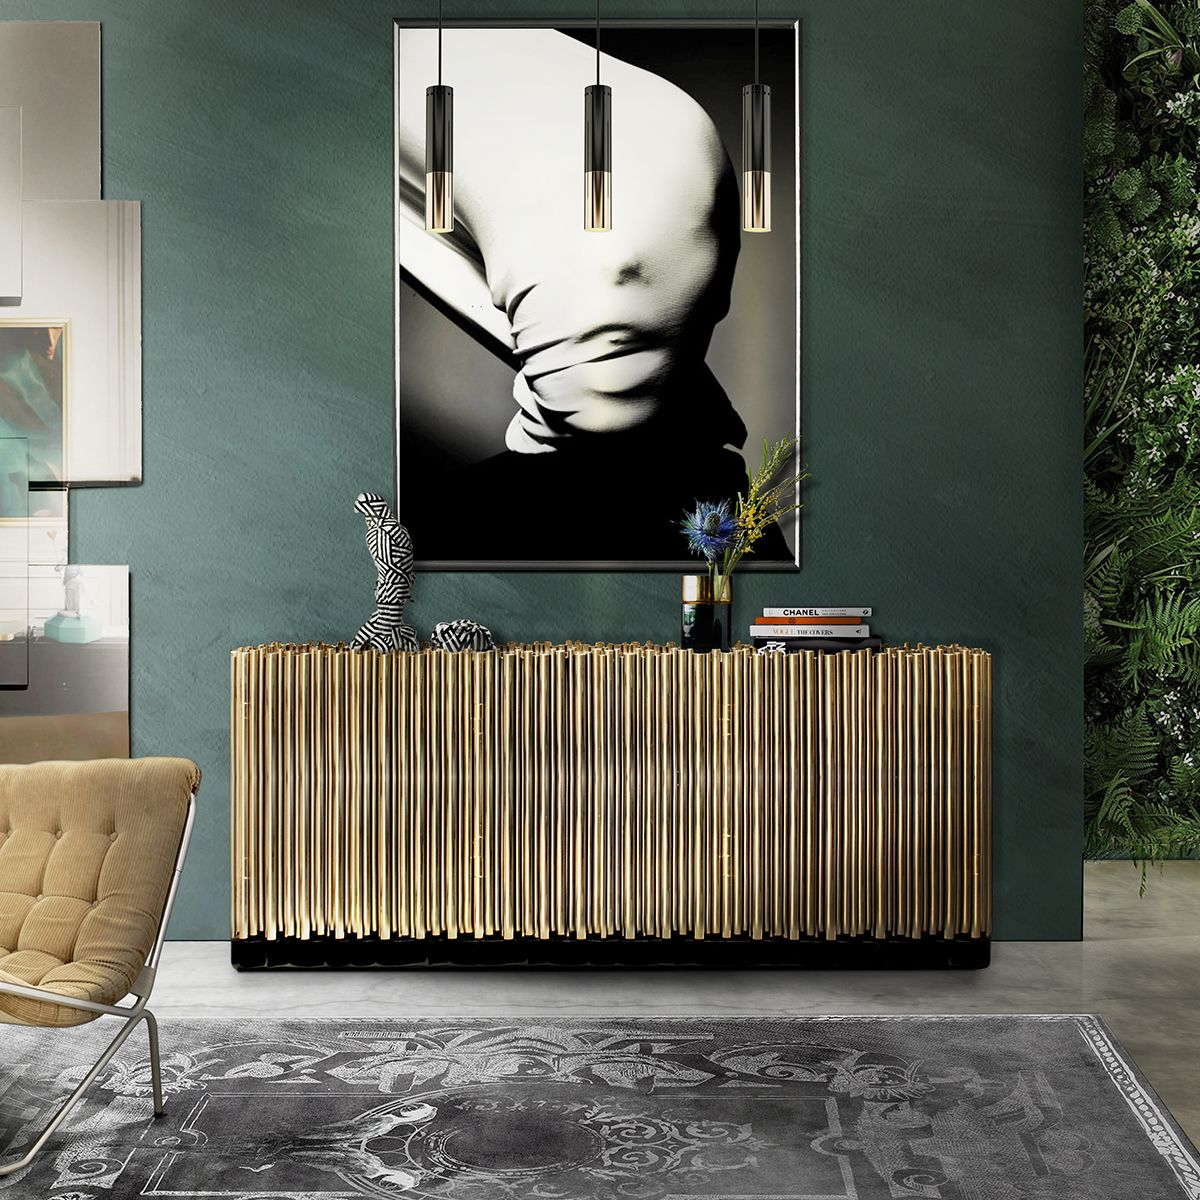 Symphony Sideboard Exclusive Furniture Counter Pinterest